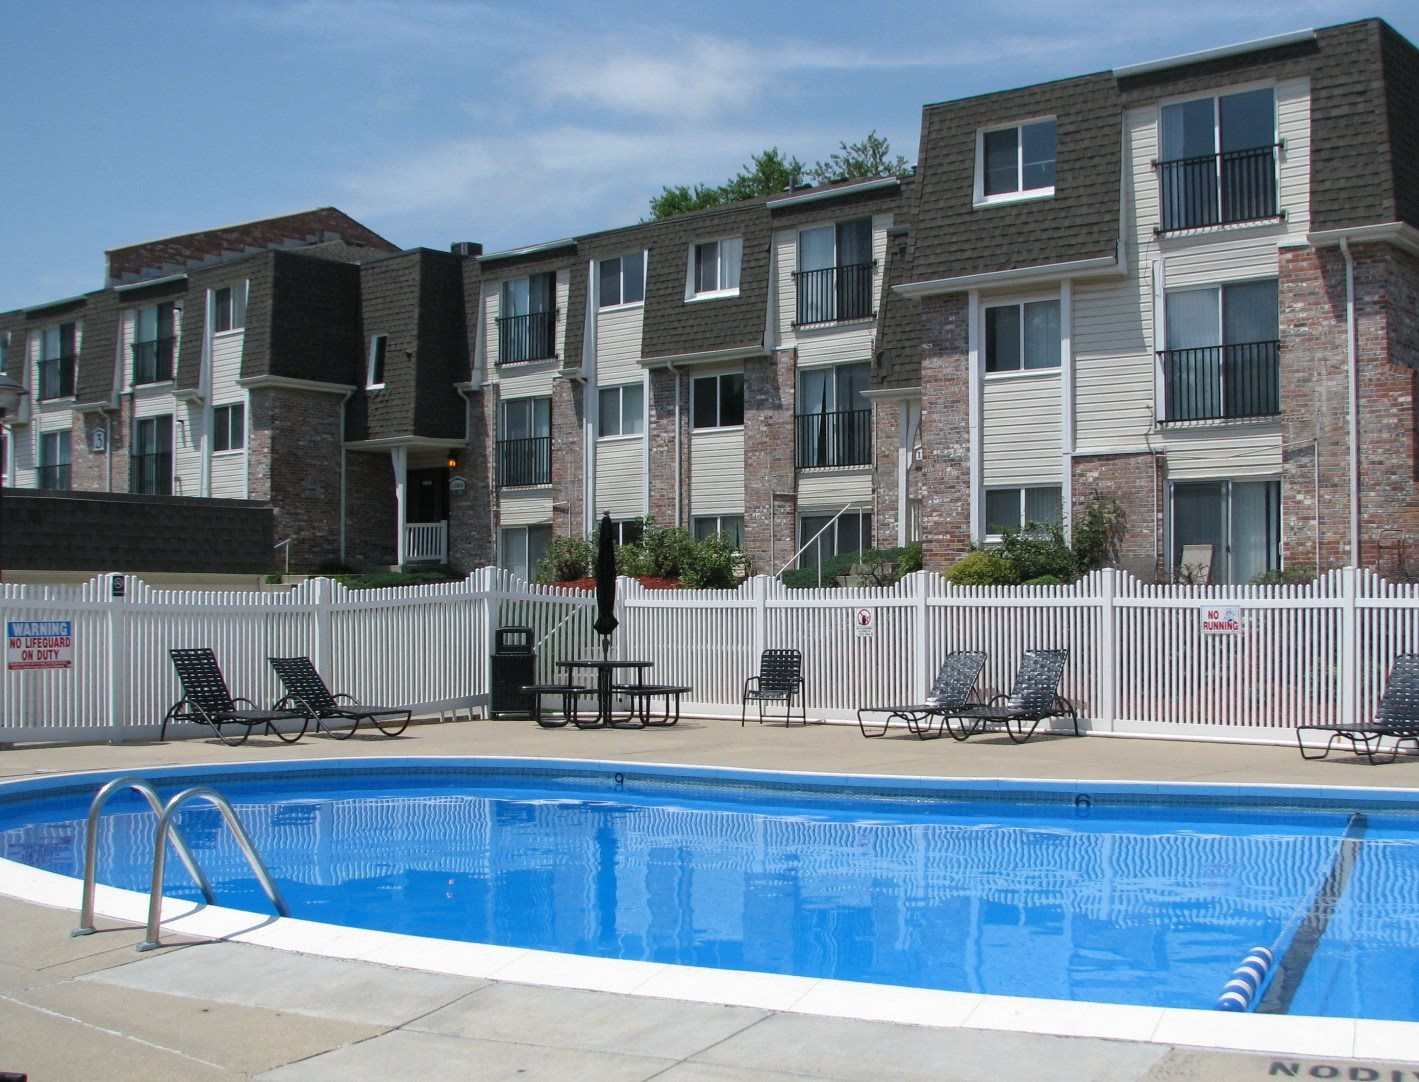 Outdoor Pool at West Haven Apartments